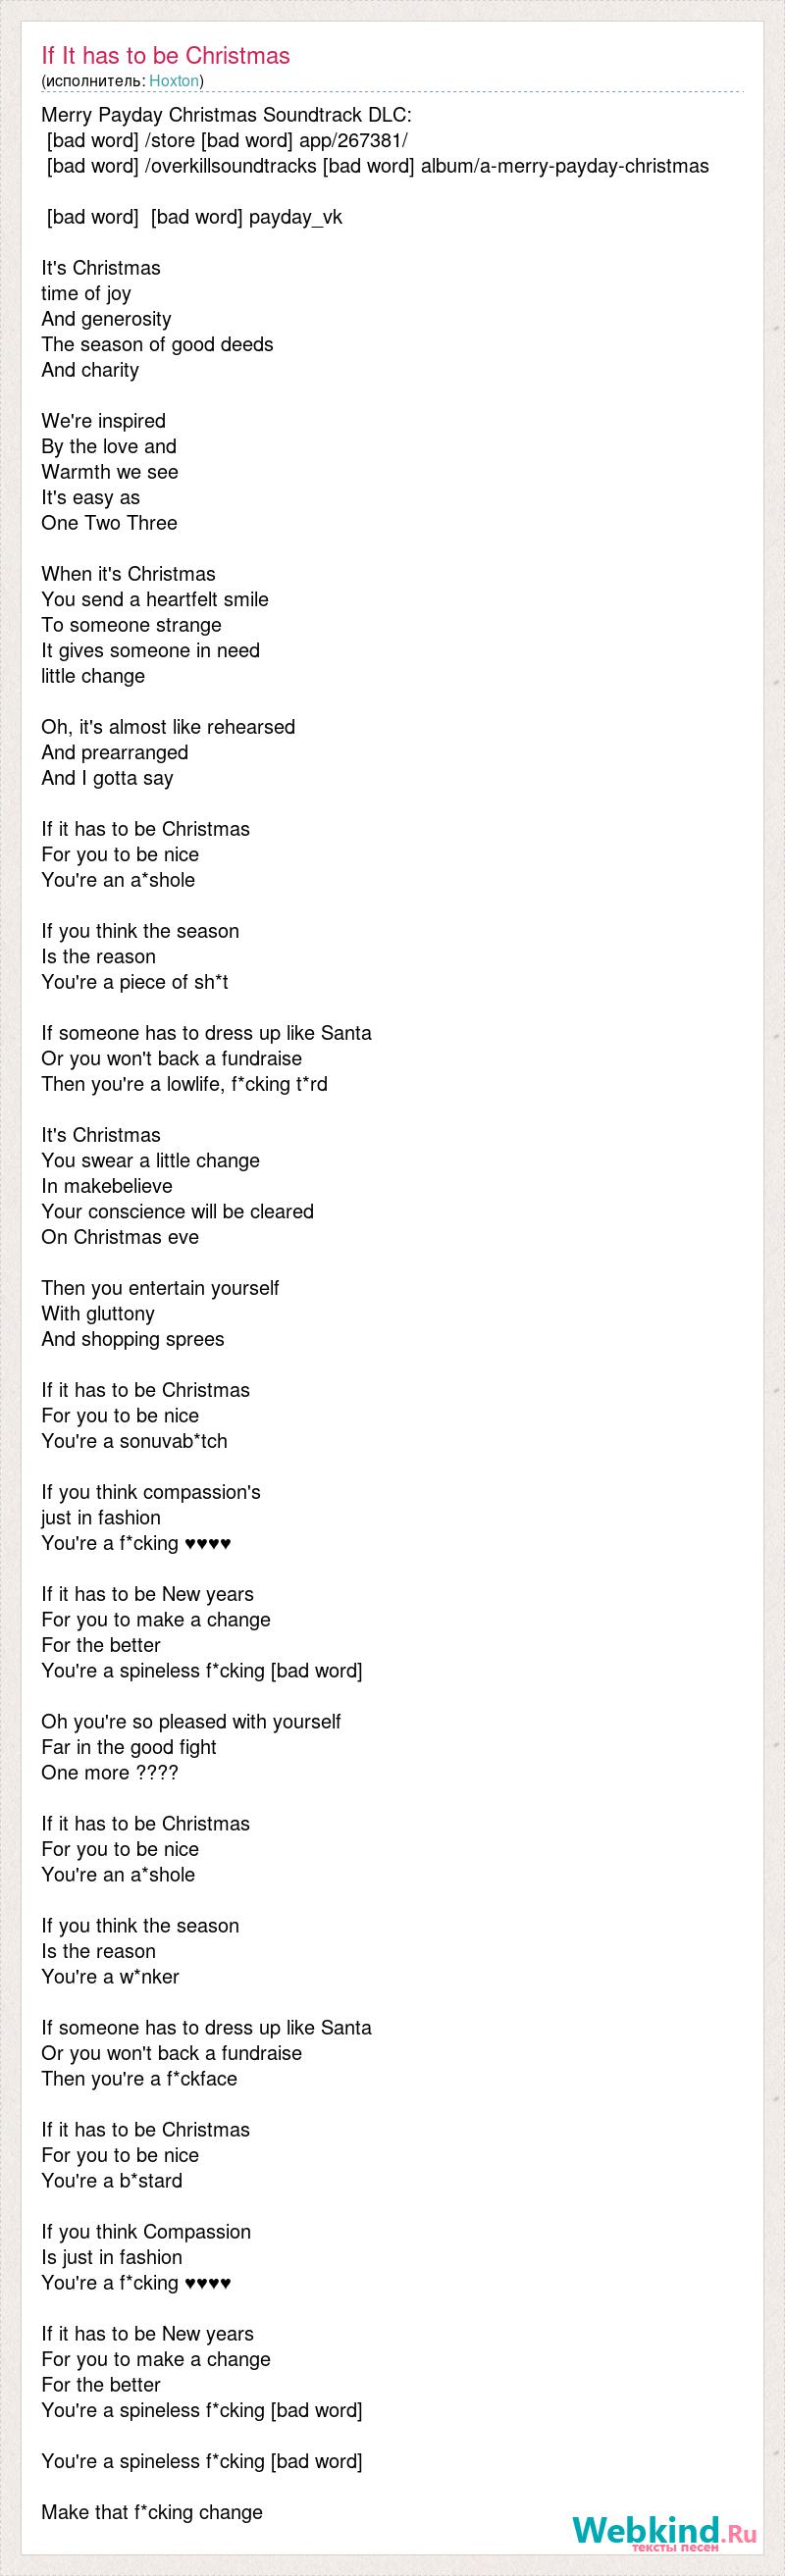 Hoxton: If It has to be Christmas слова песни